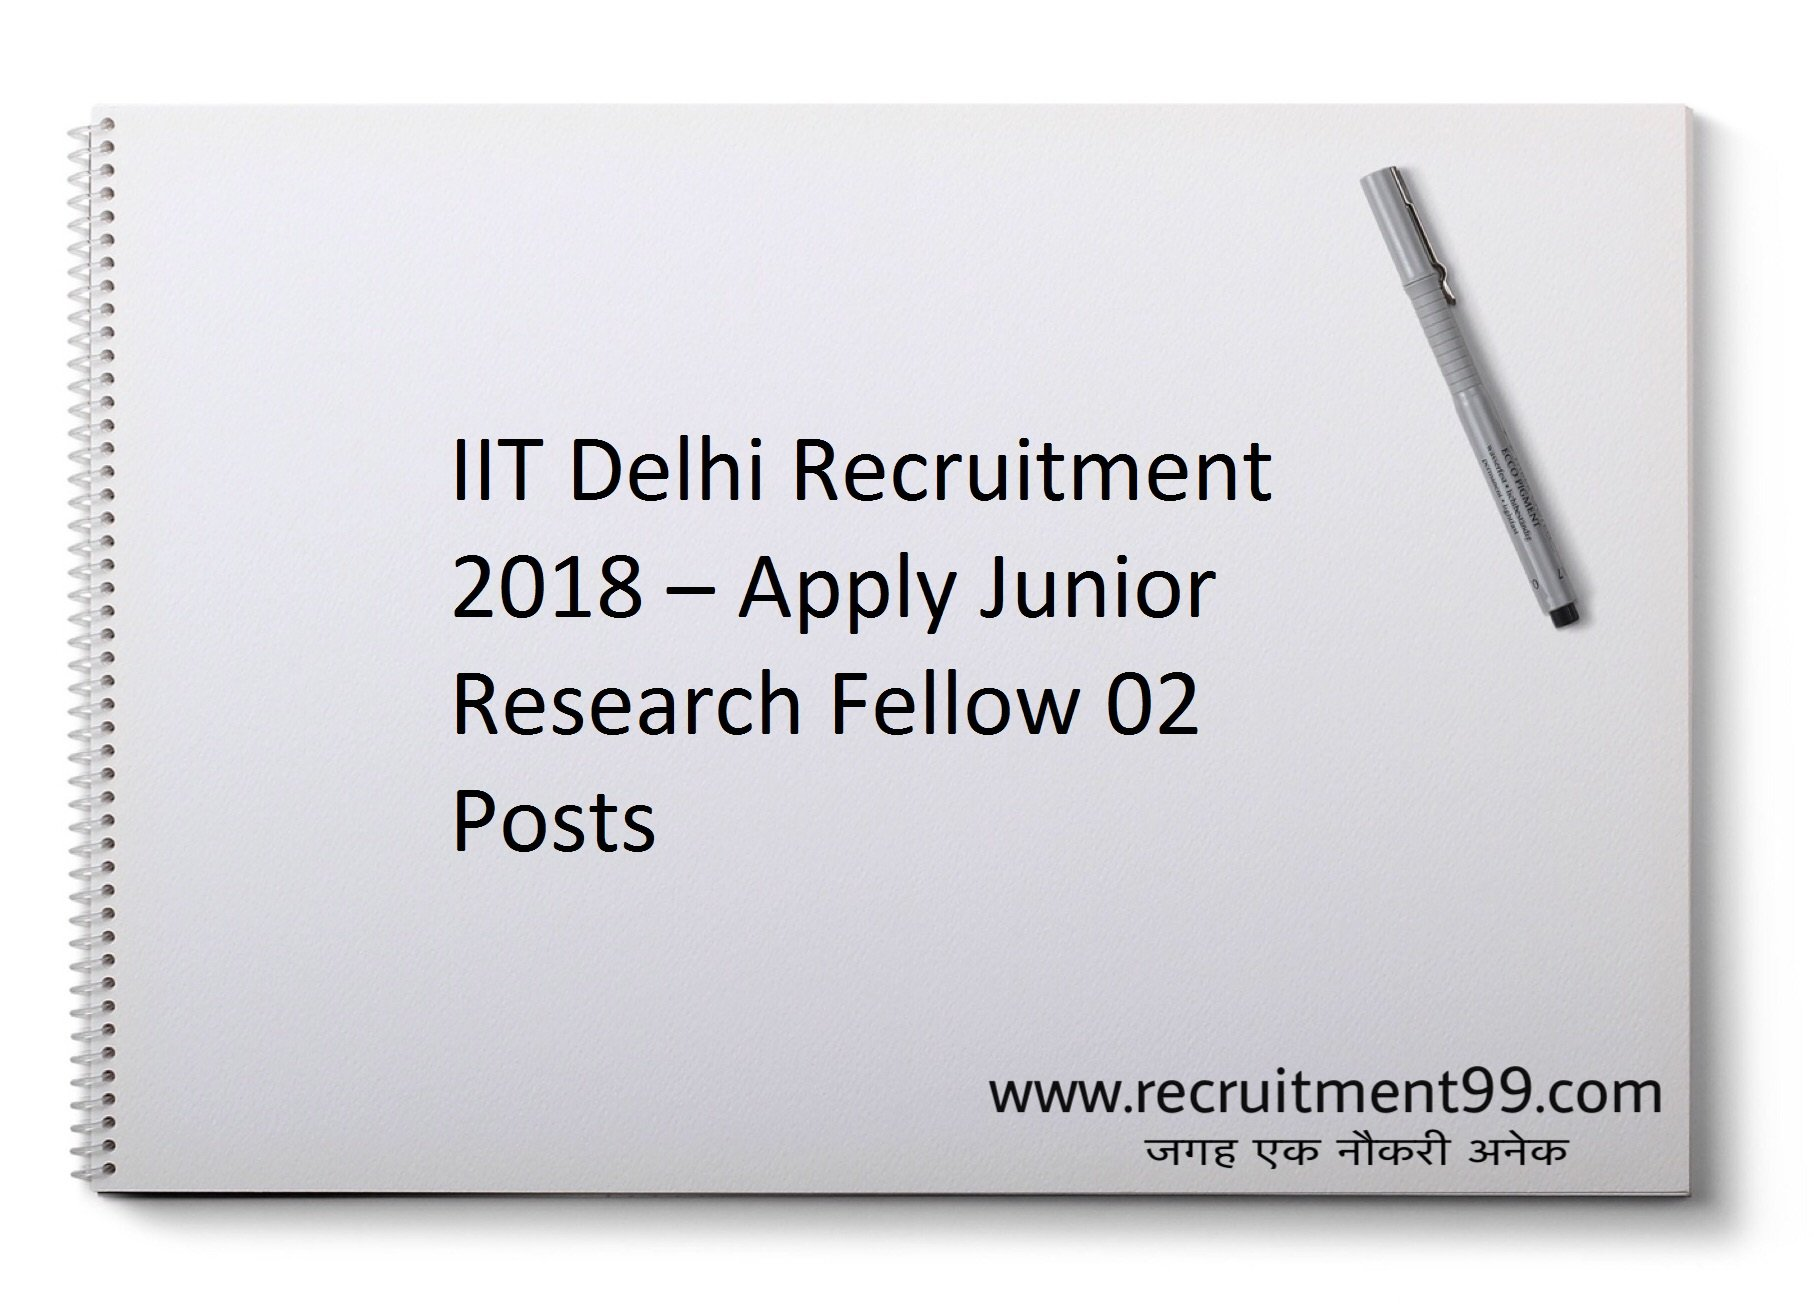 IIT Delhi Recruitment 2018 – Apply Junior Research Fellow 02 Posts